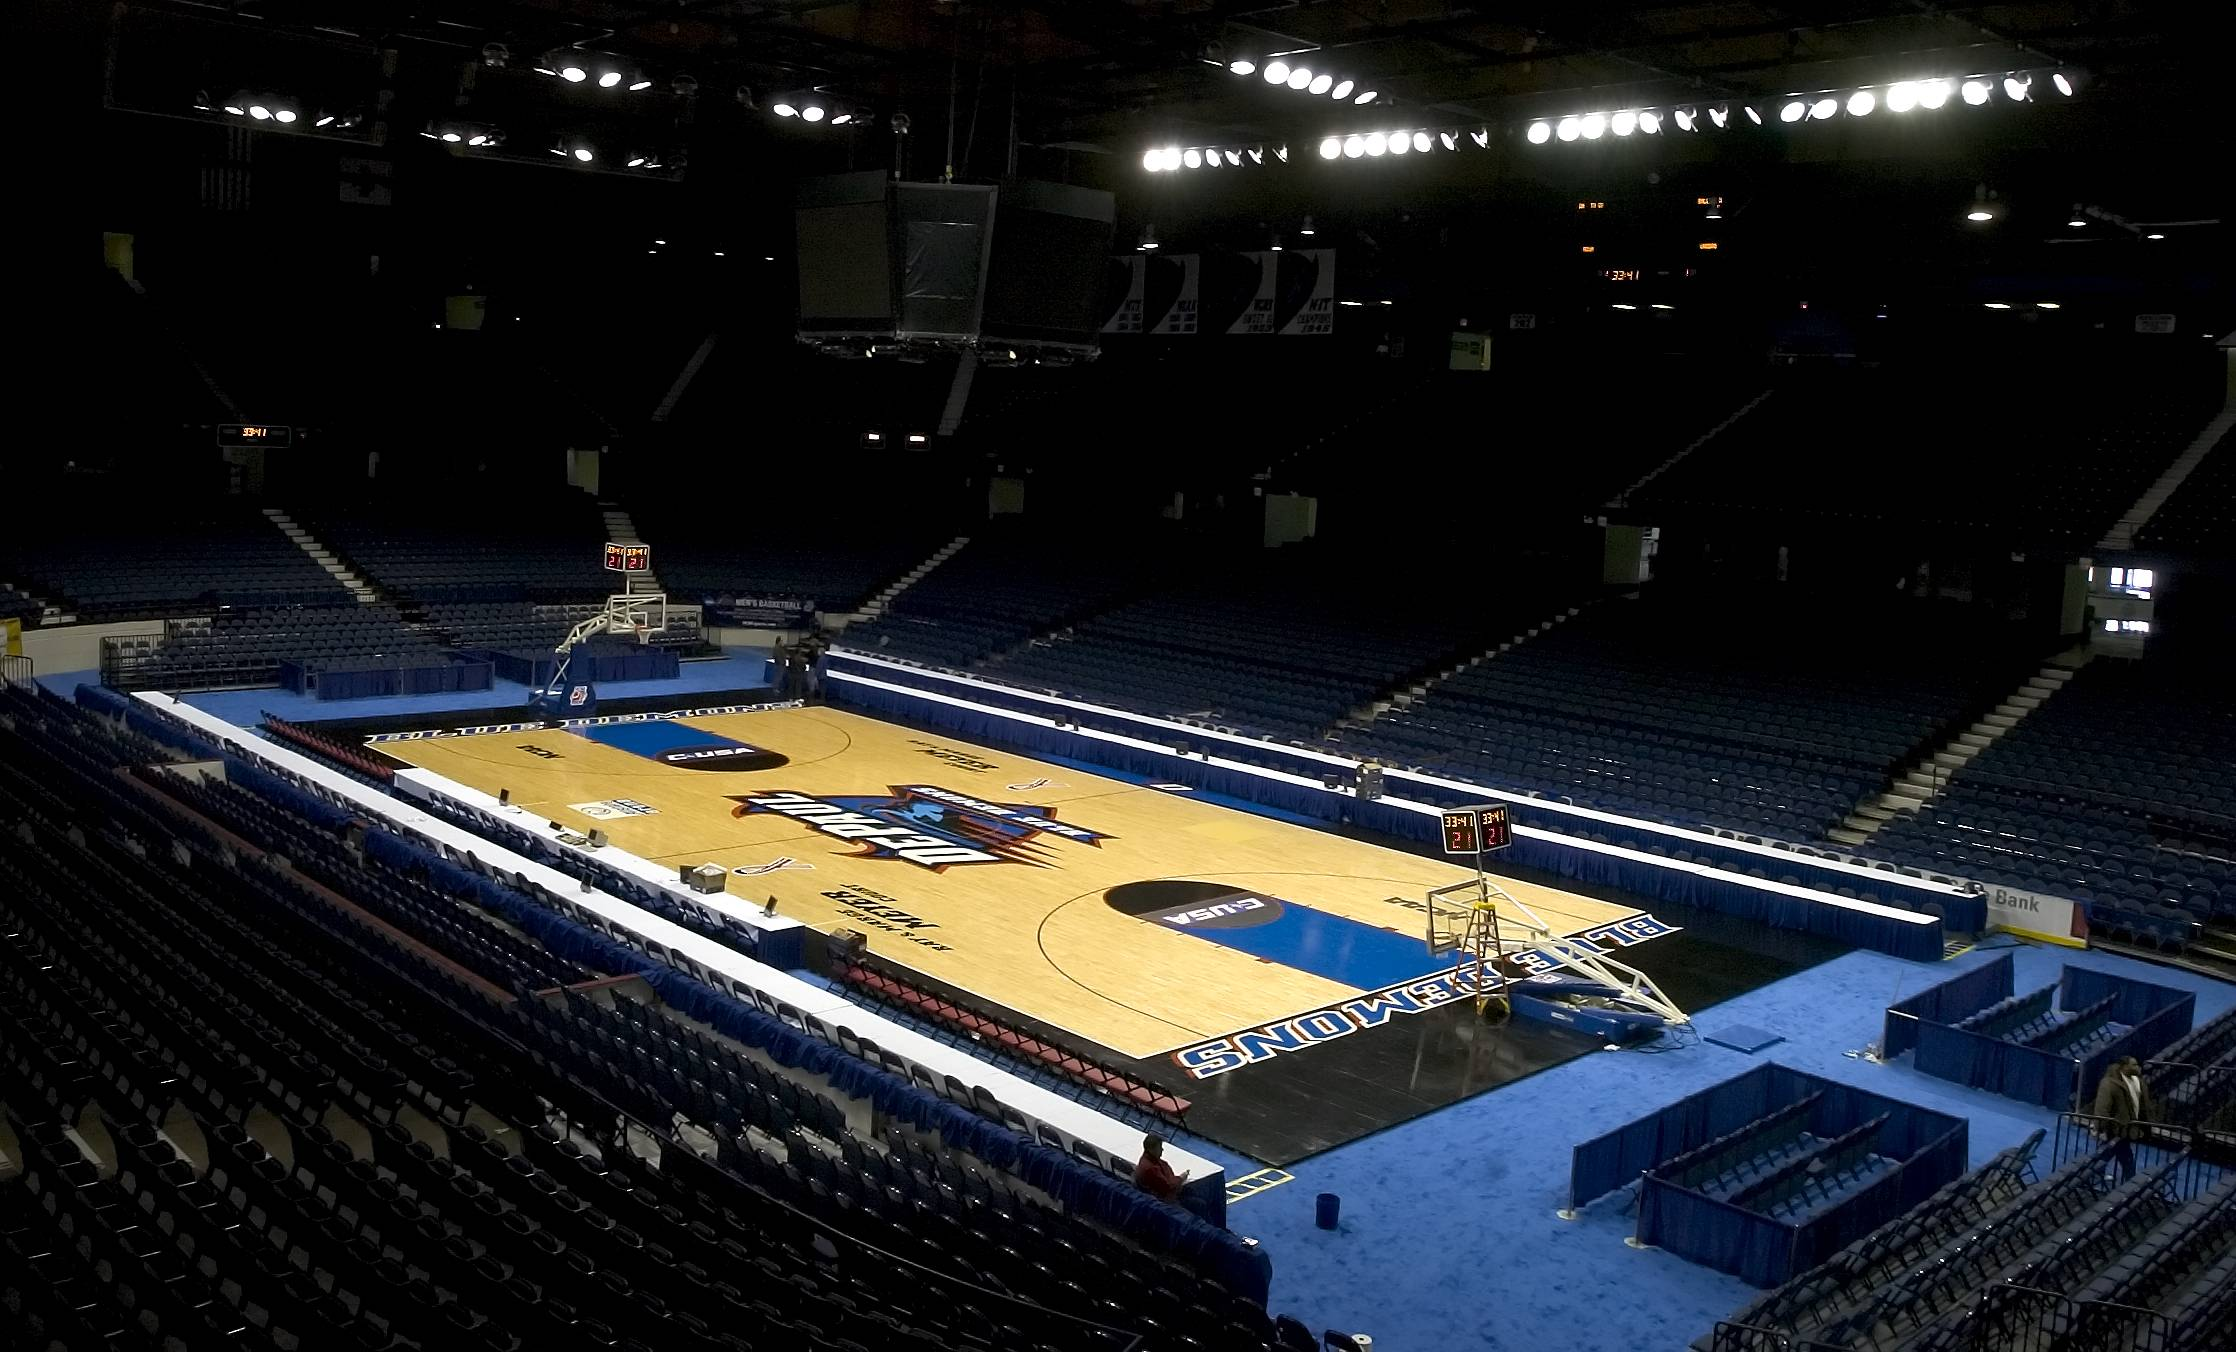 A Jack Daniel's Club is being planned for the upper level of the Allstate Arena in Rosemont that will offer drinks and food for sale to any ticketholder. The village will receive $140,000 a year under a deal that will bring the club to the stadium.